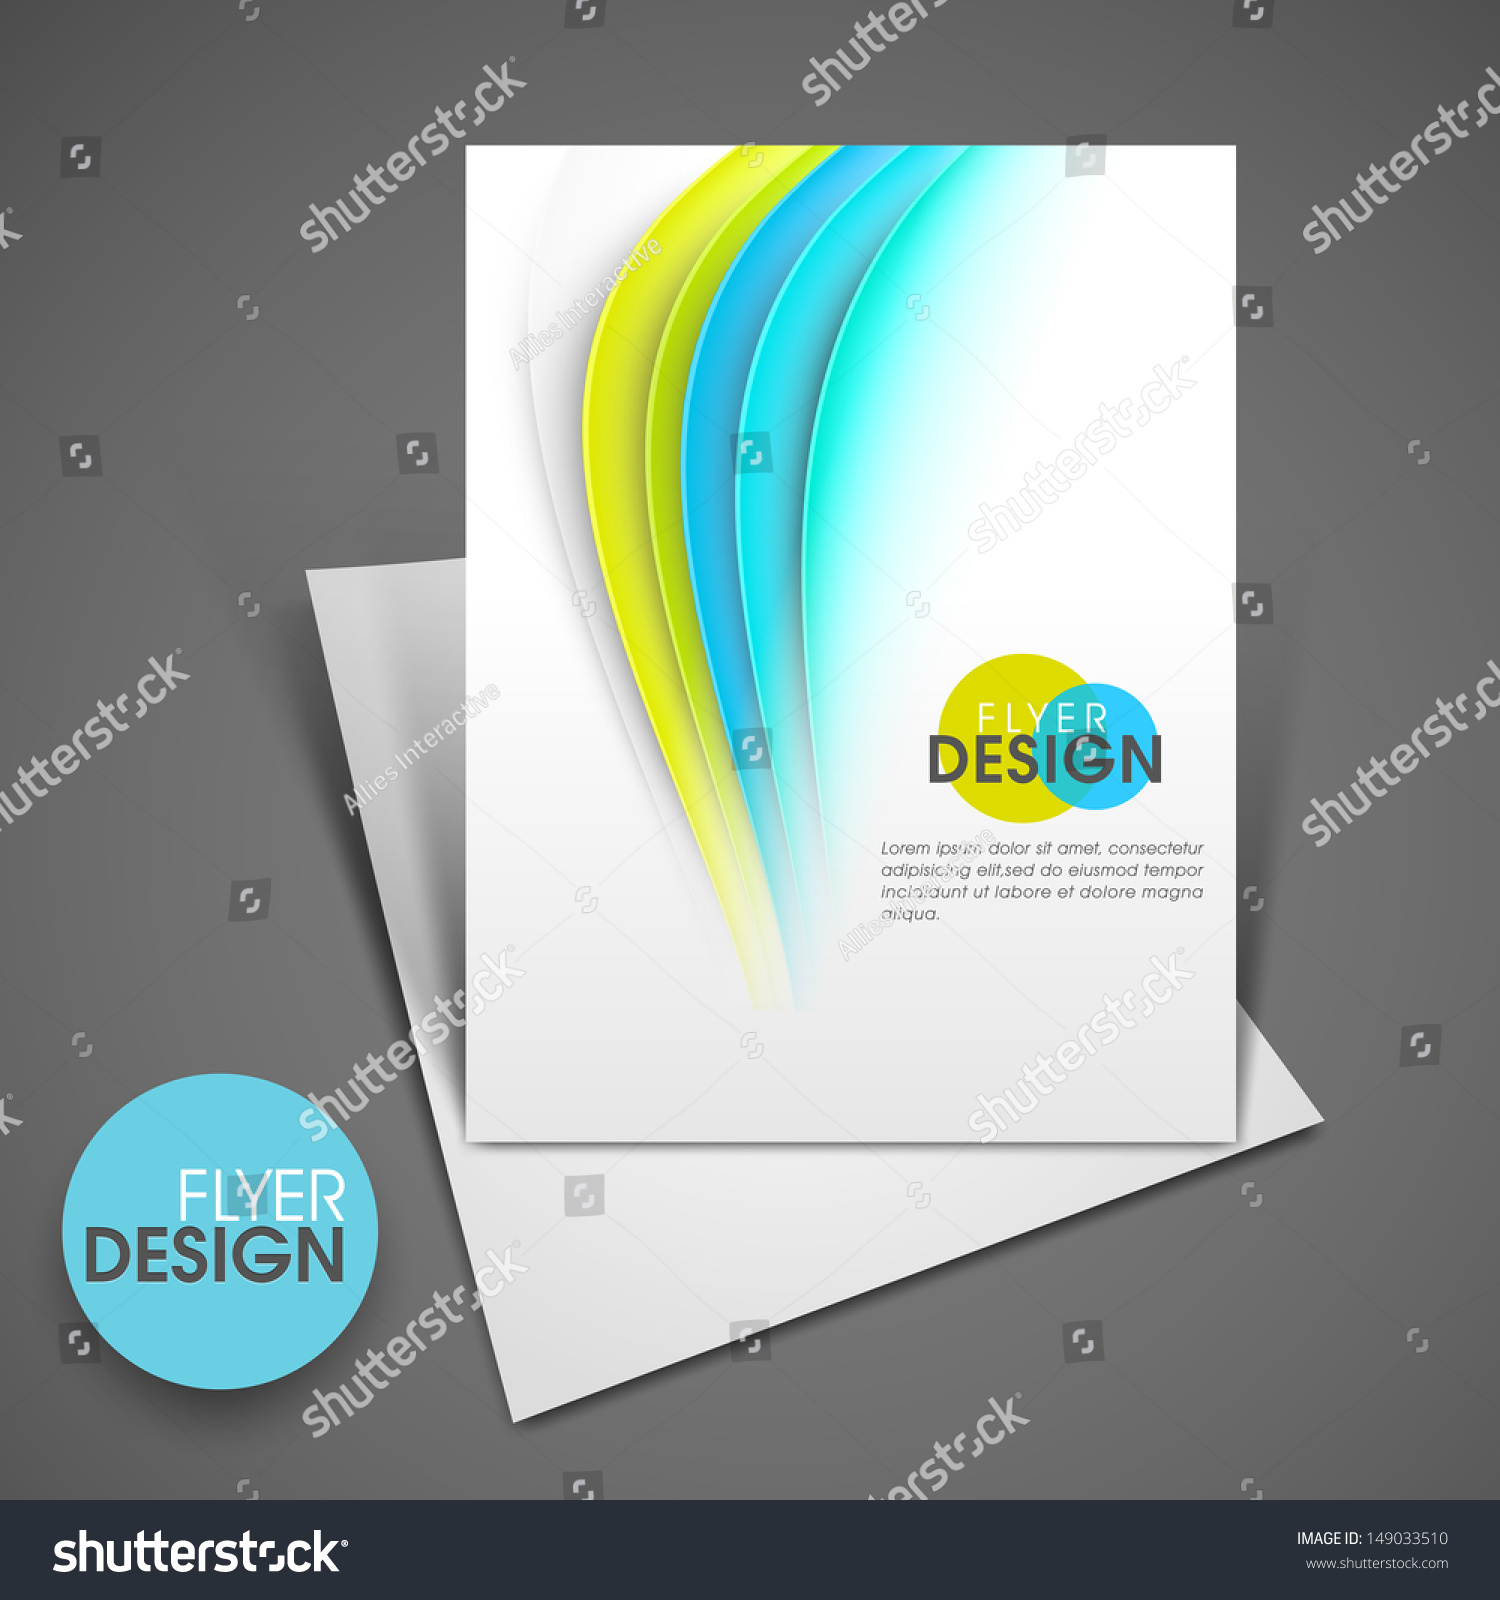 professional business flyer template corporate brochure stock professional business flyer template corporate brochure or cover design can be use for publishing